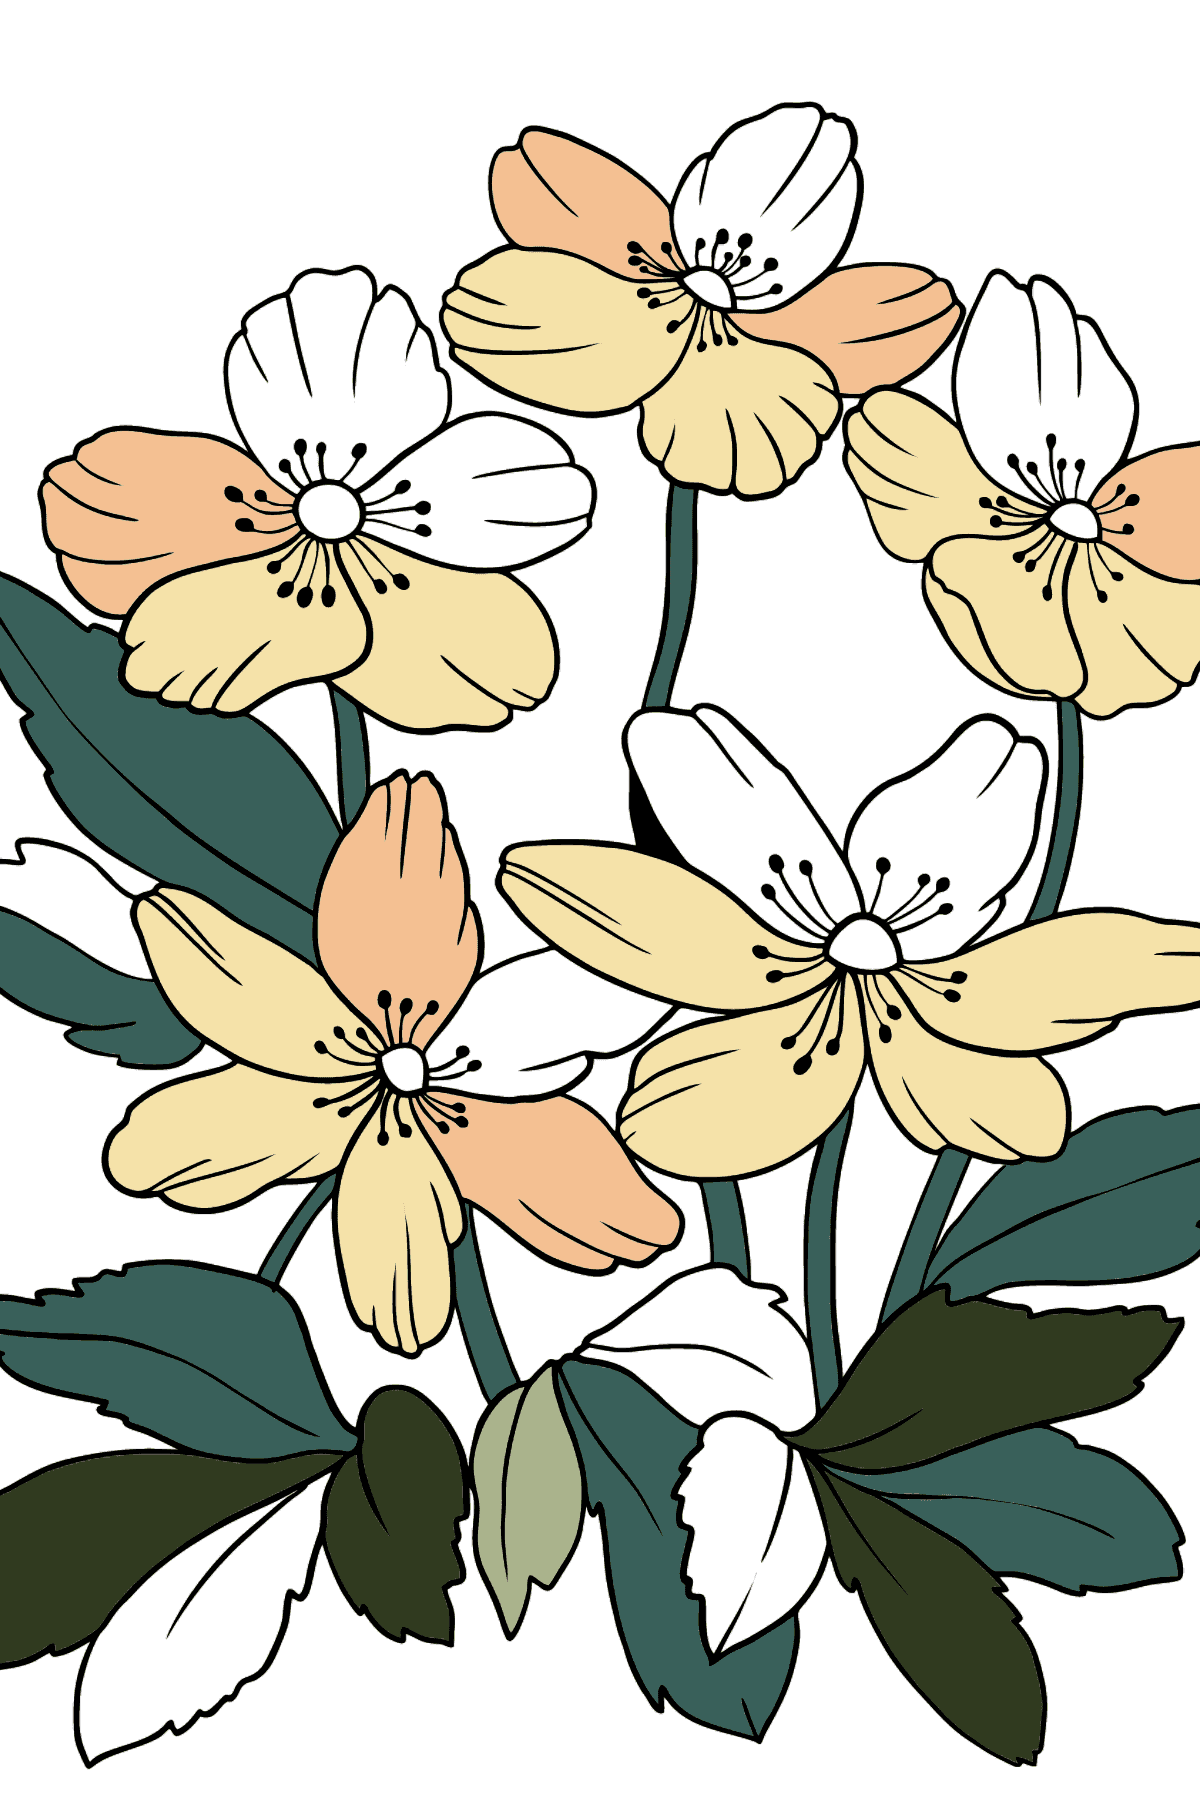 Flower Coloring Page - A Windflower with Yellow Petals - Coloring Pages for Kids